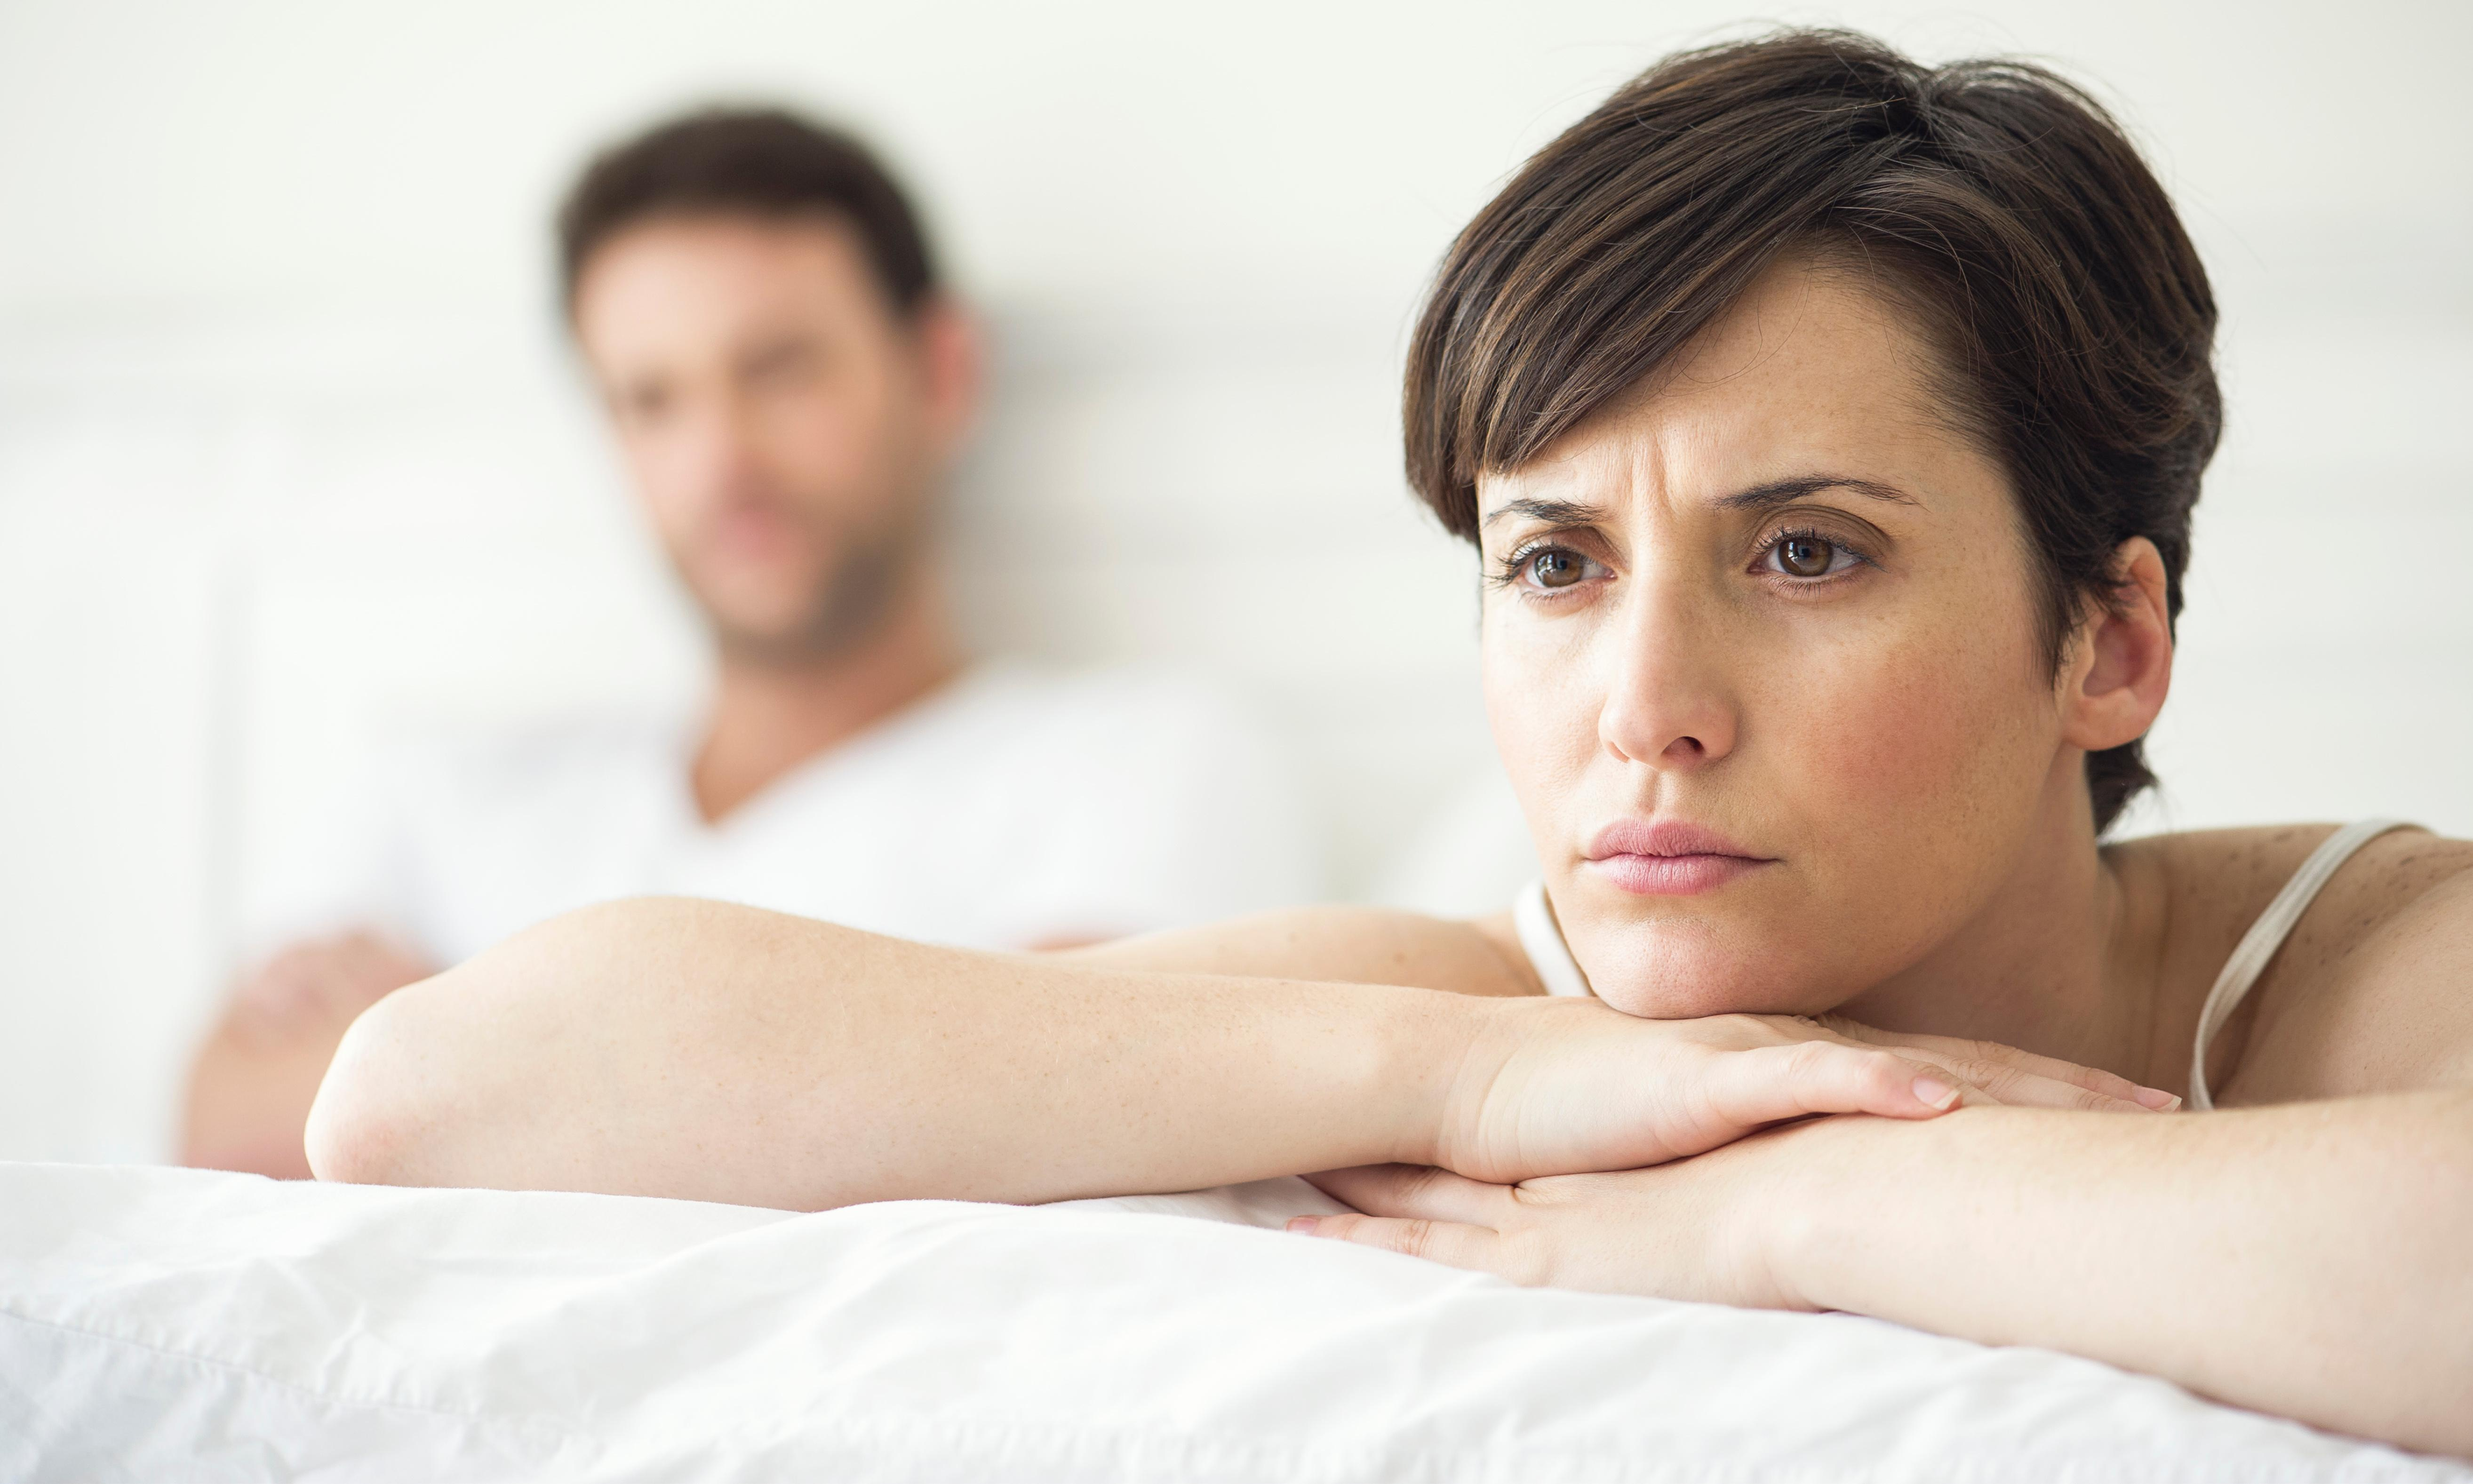 My husband of 17 years is kind but our marriage is loveless